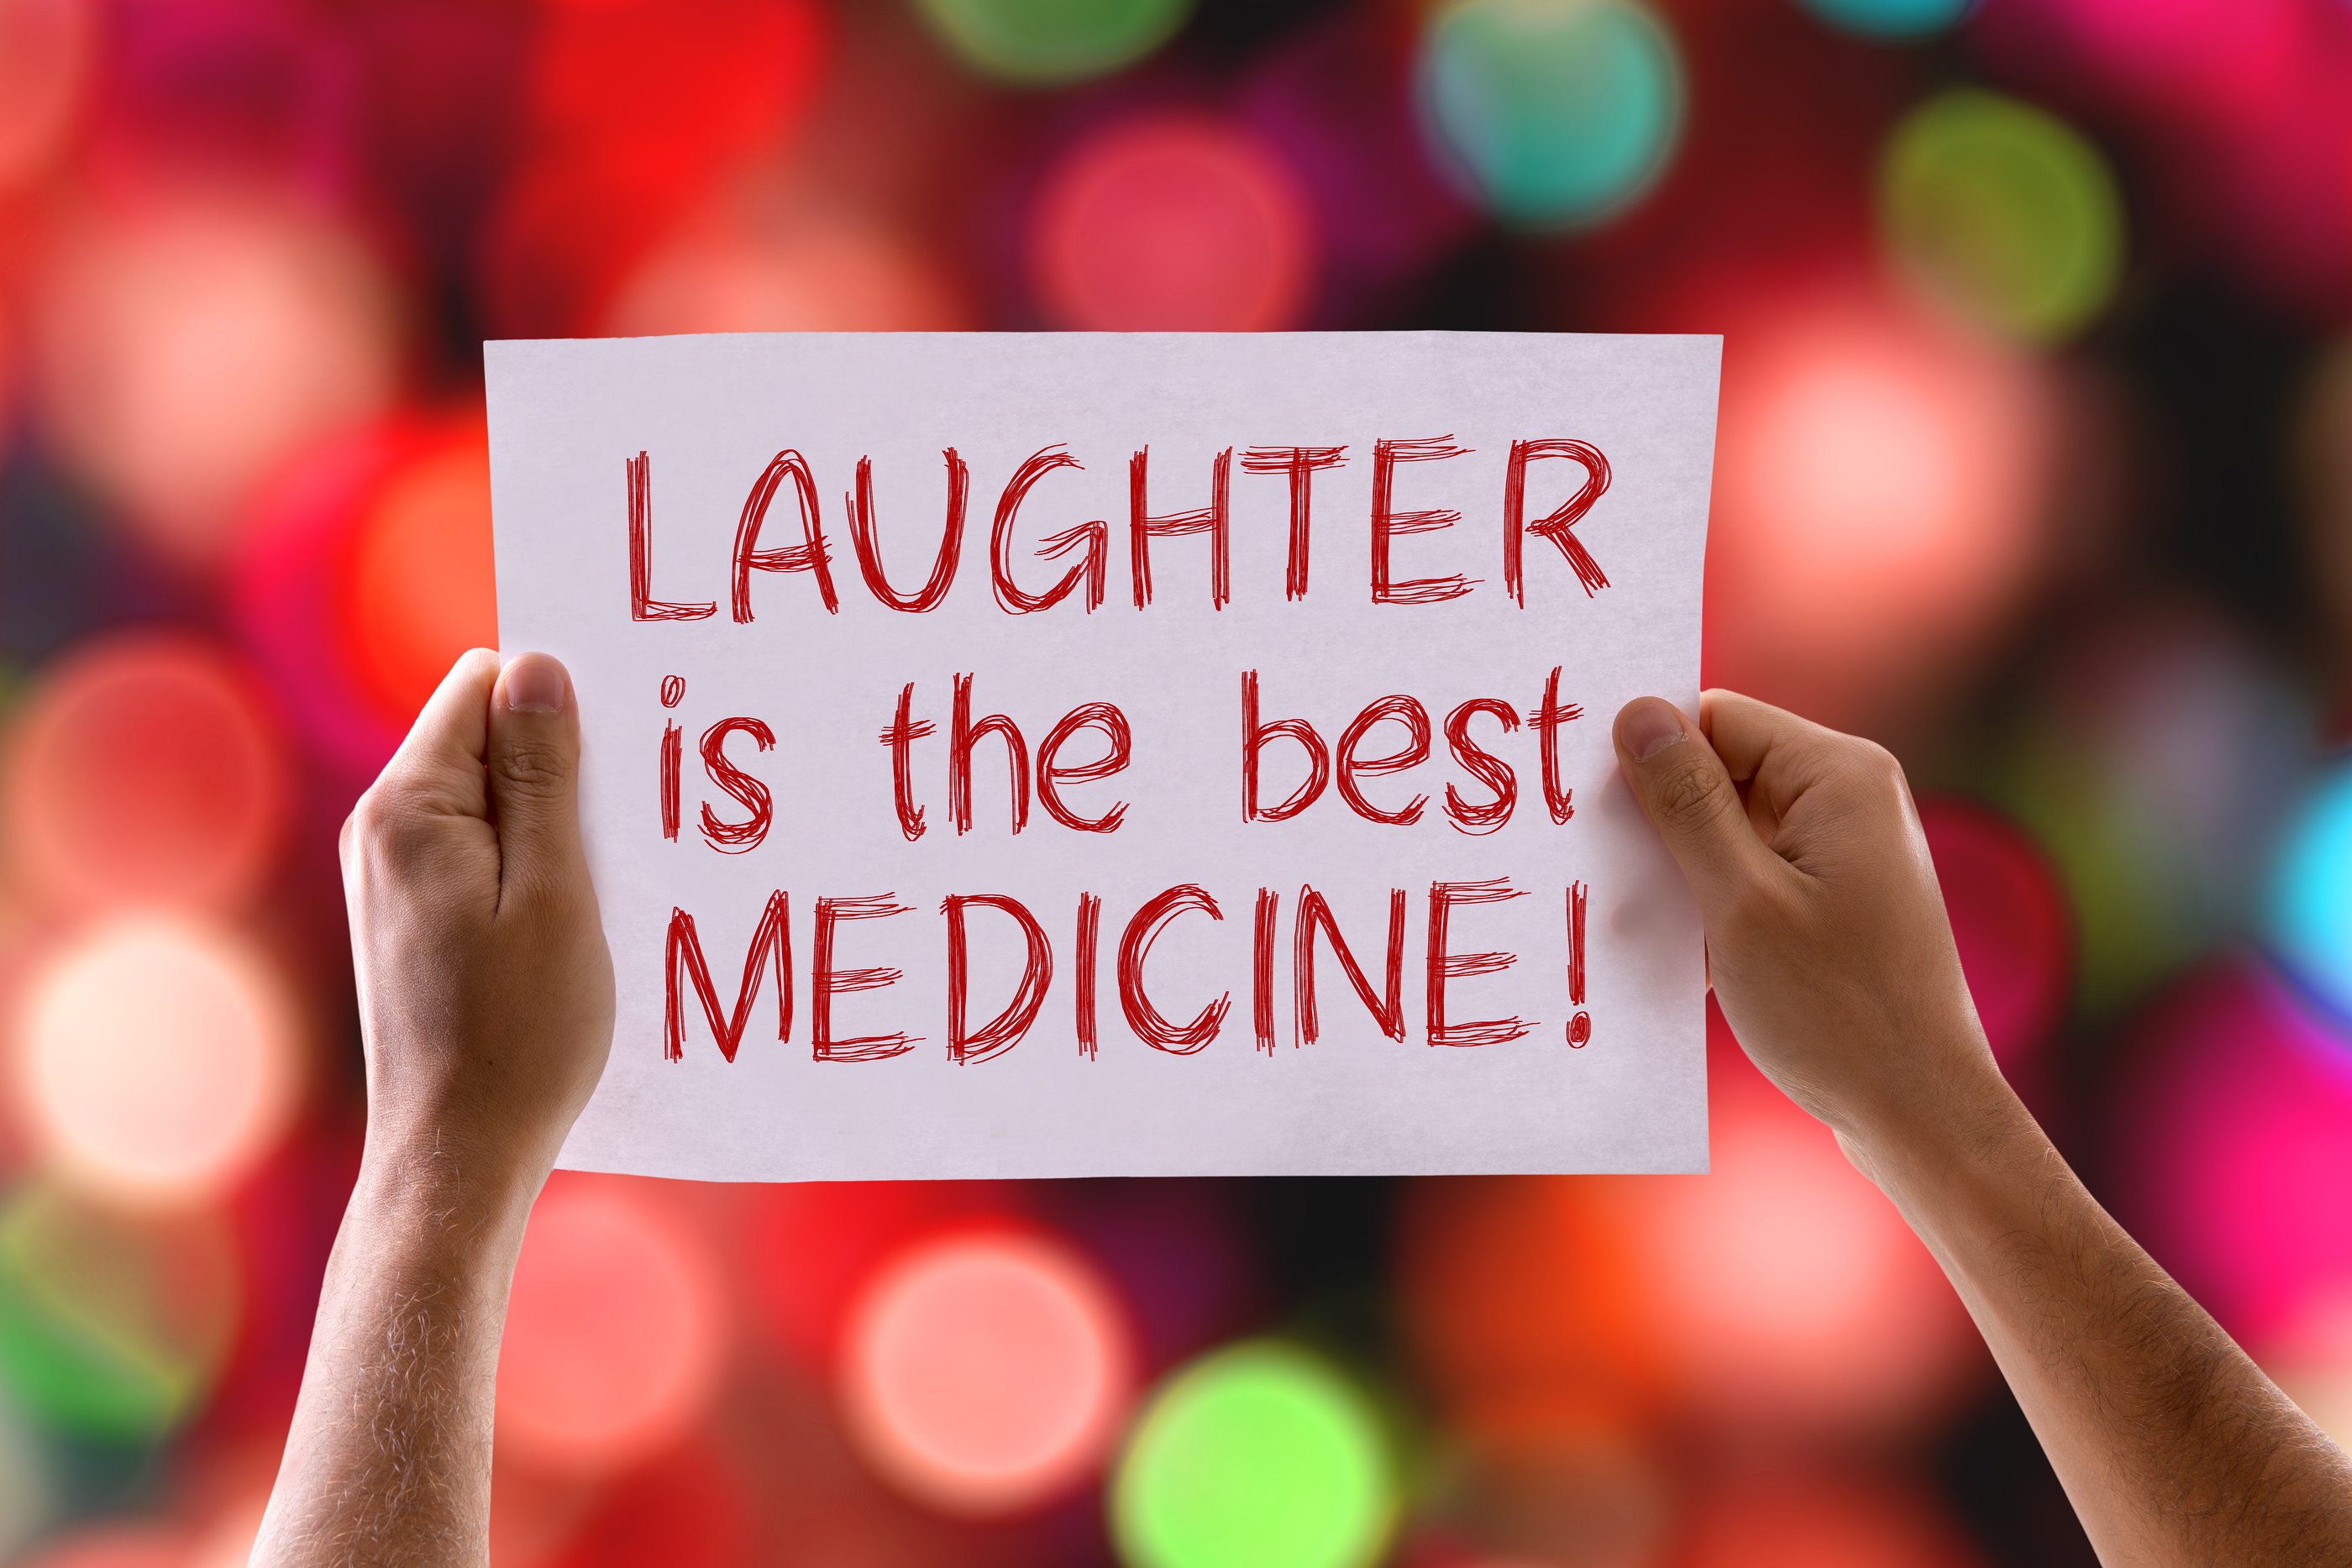 laughter and best medicine Laughter quotes from brainyquote, an extensive collection of quotations by famous authors, celebrities, and newsmakers.